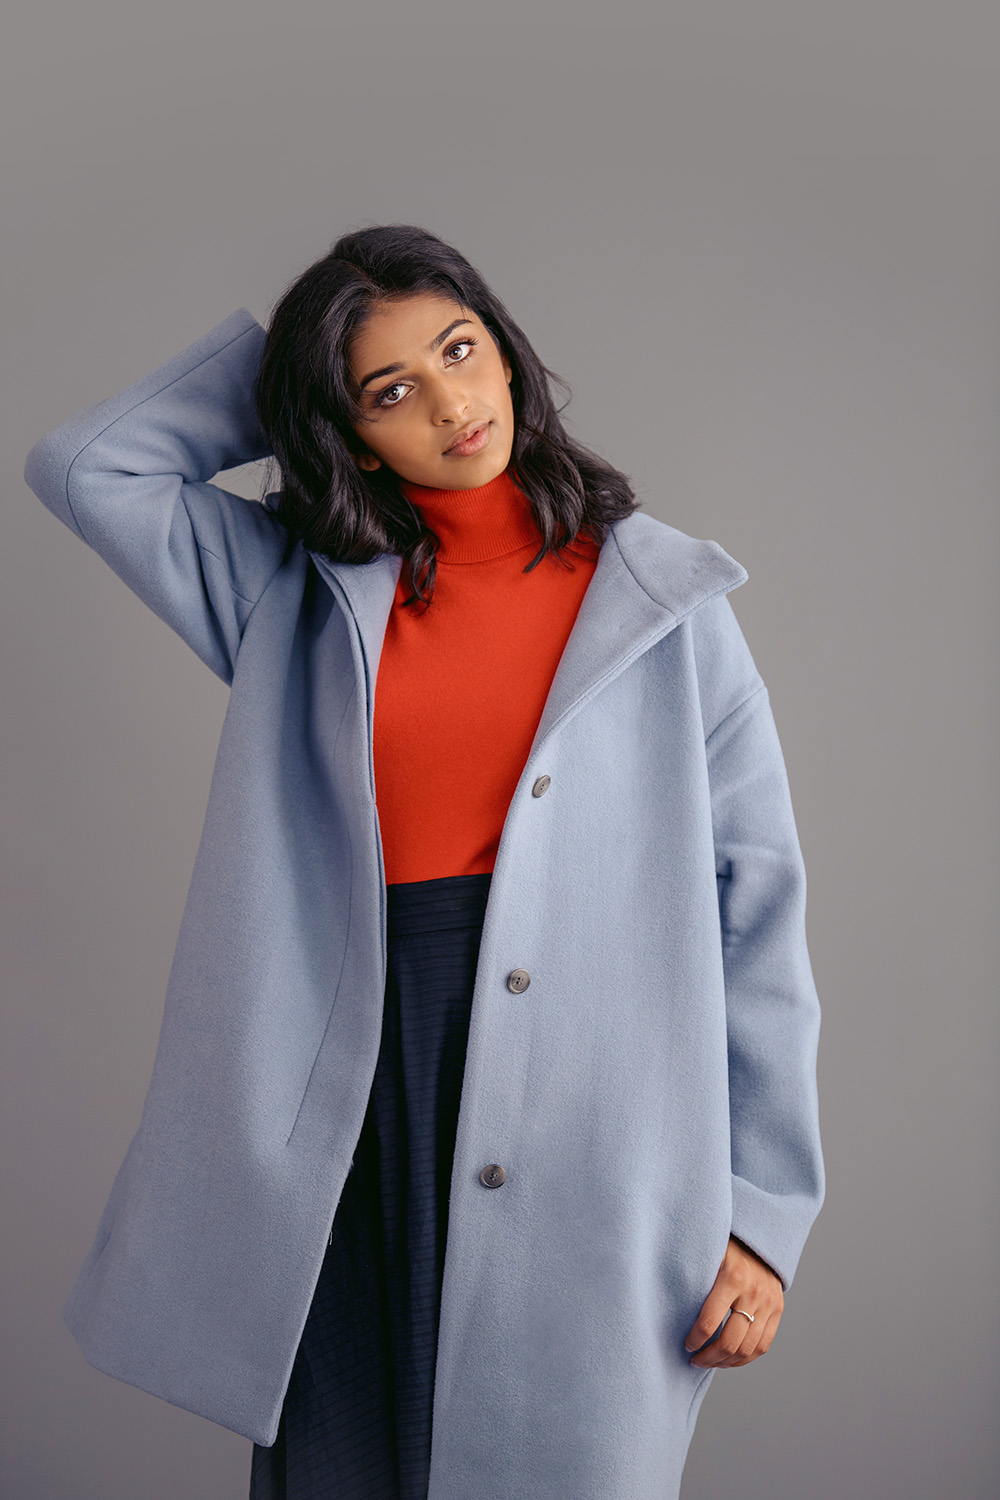 Studio B Portraits_pretty Indian girl in powder blu coat and red turtleneck_Lakshman_6831v.jpg